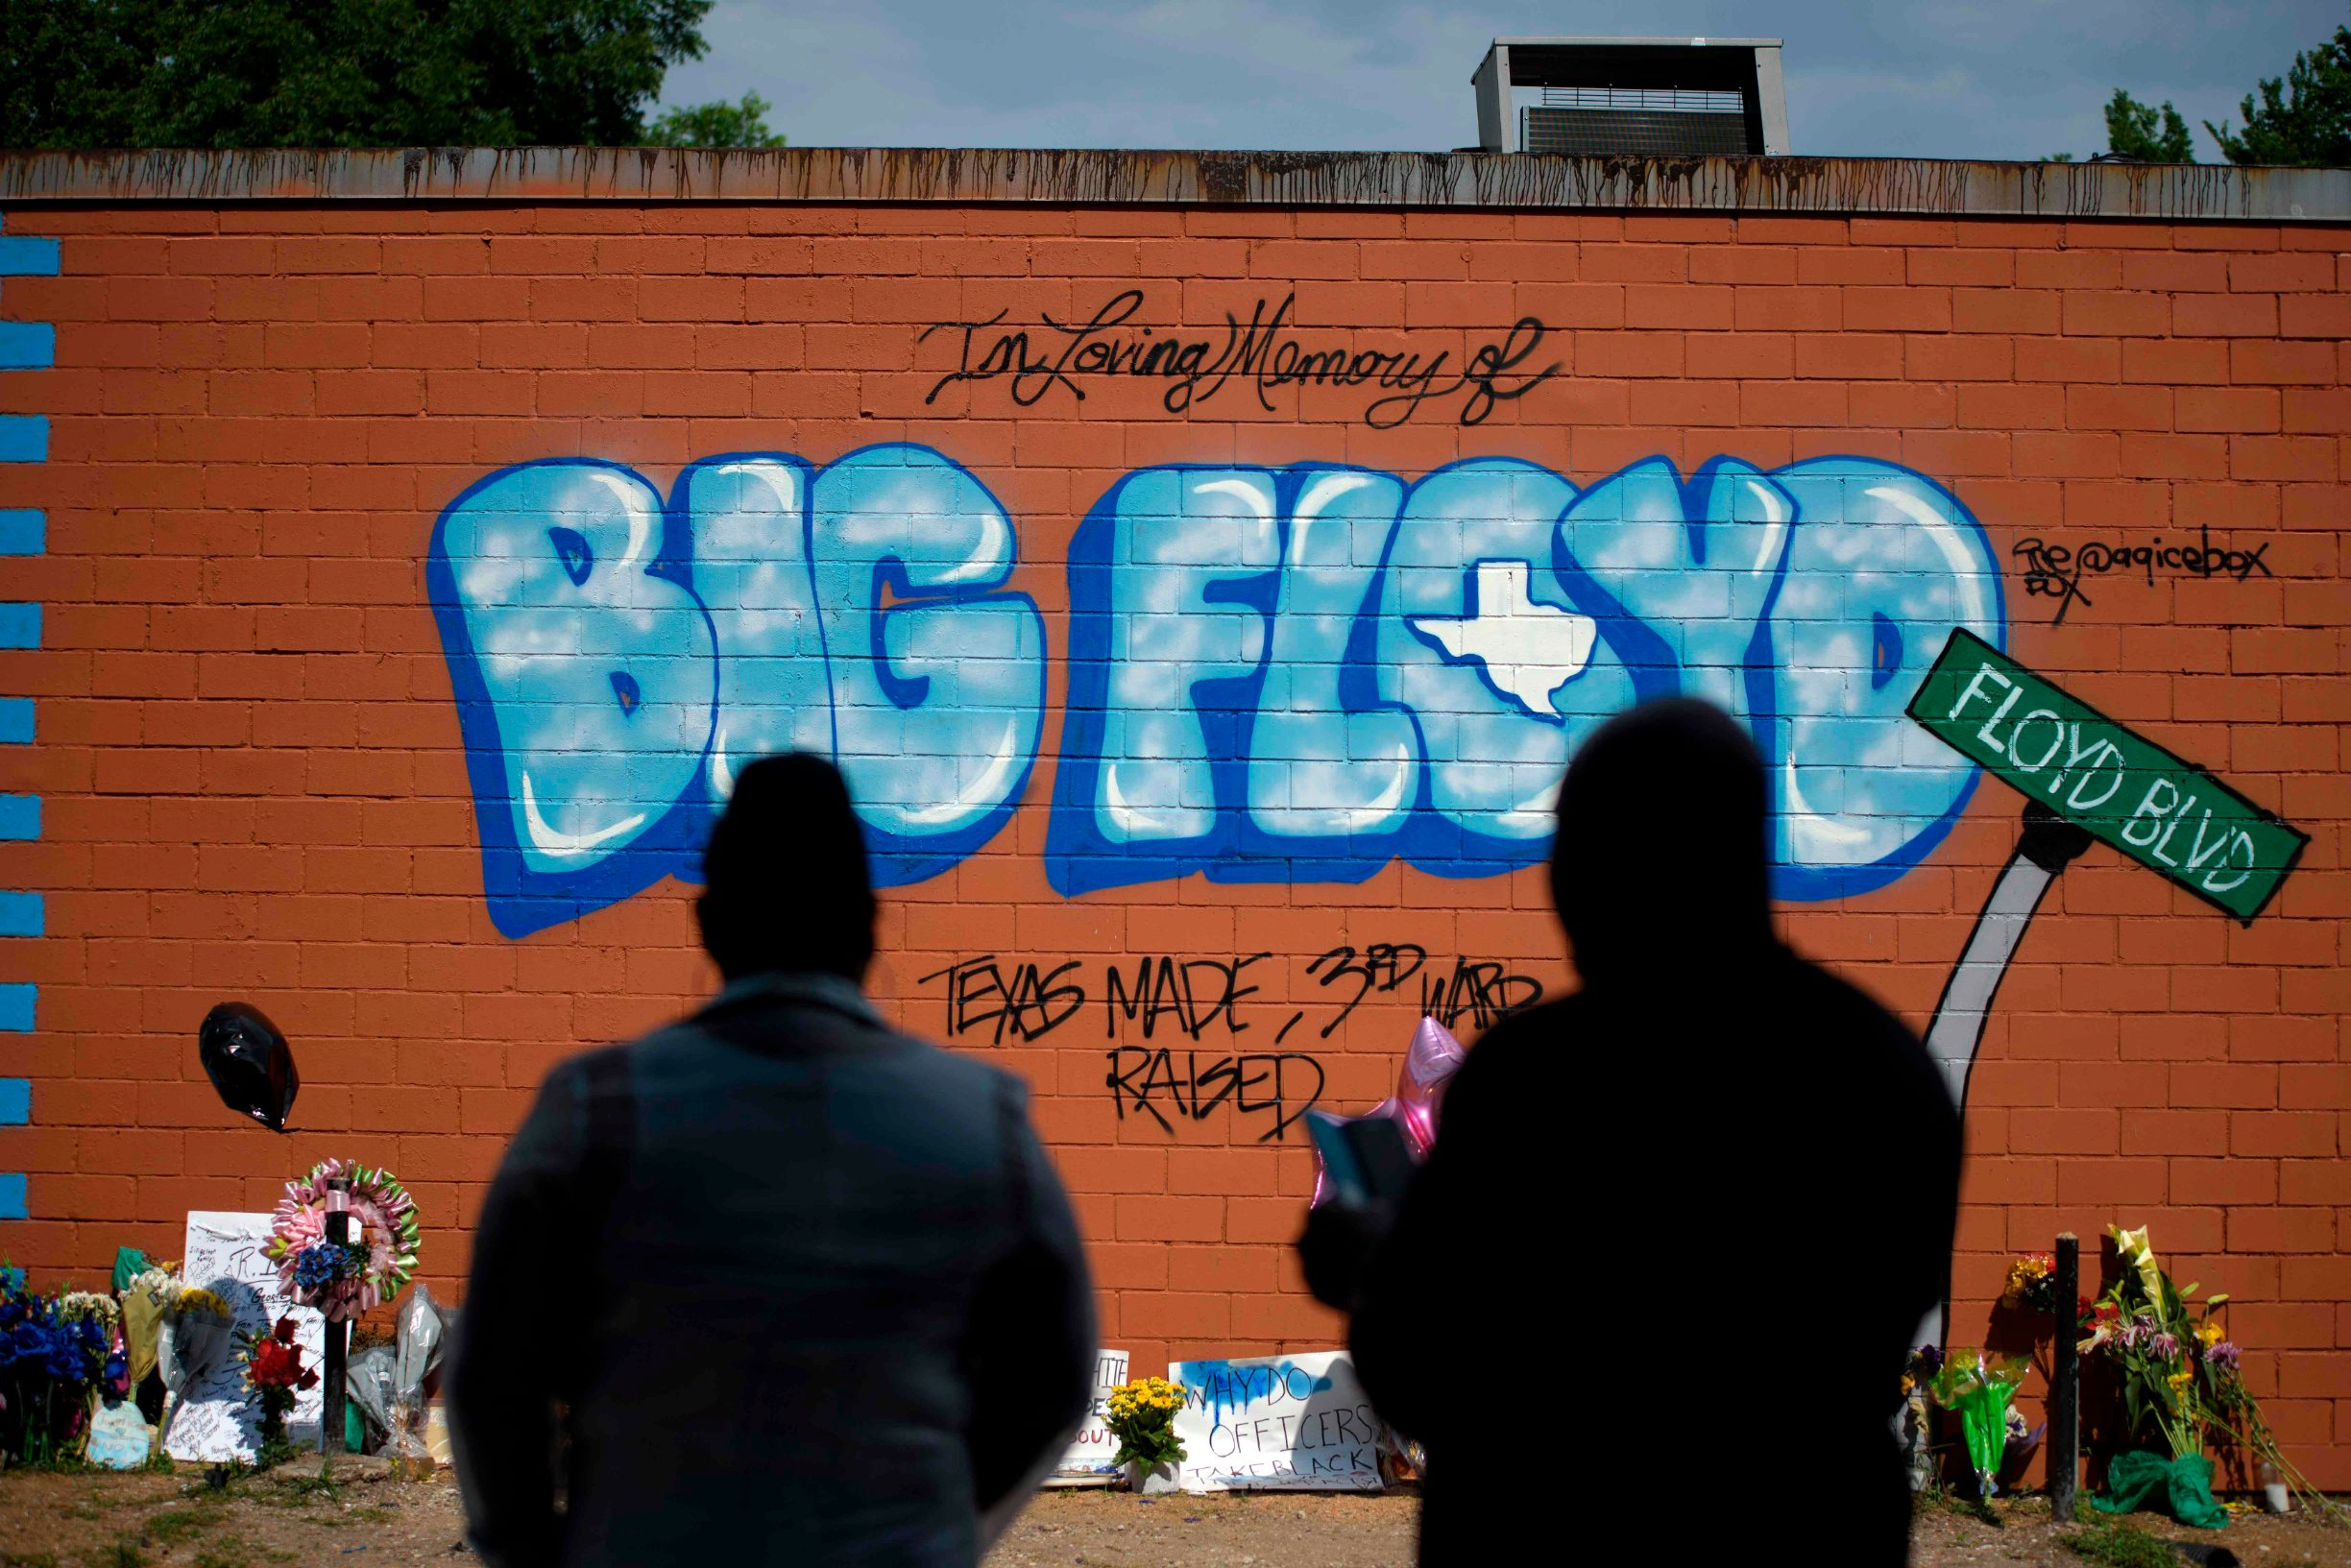 Visitors pay their respects to George Floyd at a mural in Houston, Texas on Monday, June 8, 2020. - Democrats vowed June 7, 2020 to press legislation to fight systemic racism in US law enforcement as the battle for change triggered by the police killing of George Floyd began shifting from the streets to the political sphere.Demonstrations continued across the nation Sunday -- including in Washington, New York and Winter Park, Florida -- as protesters began focusing their initial outrage over the death of the unarmed Floyd into demands for police reform and social justice. (Photo by Mark Felix / AFP)